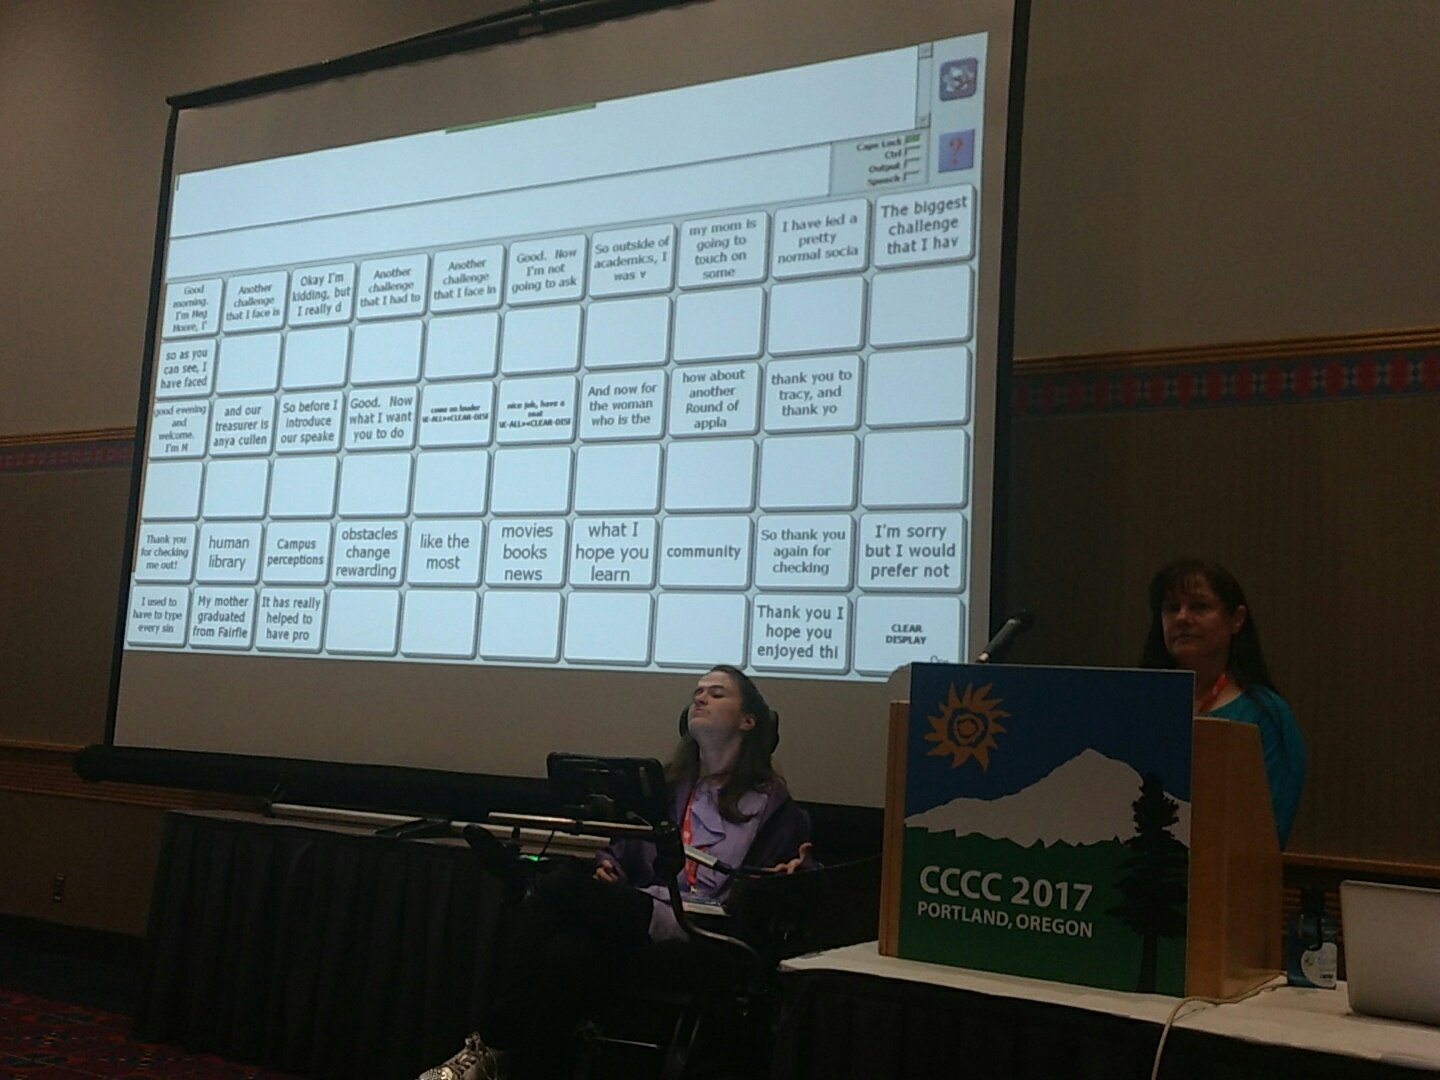 Meg gives us a view of her composing process & assistive tech as she writes responses to ?s. VGA cable slows computer down. #4c17 #a28 https://t.co/voCVl8pIIC